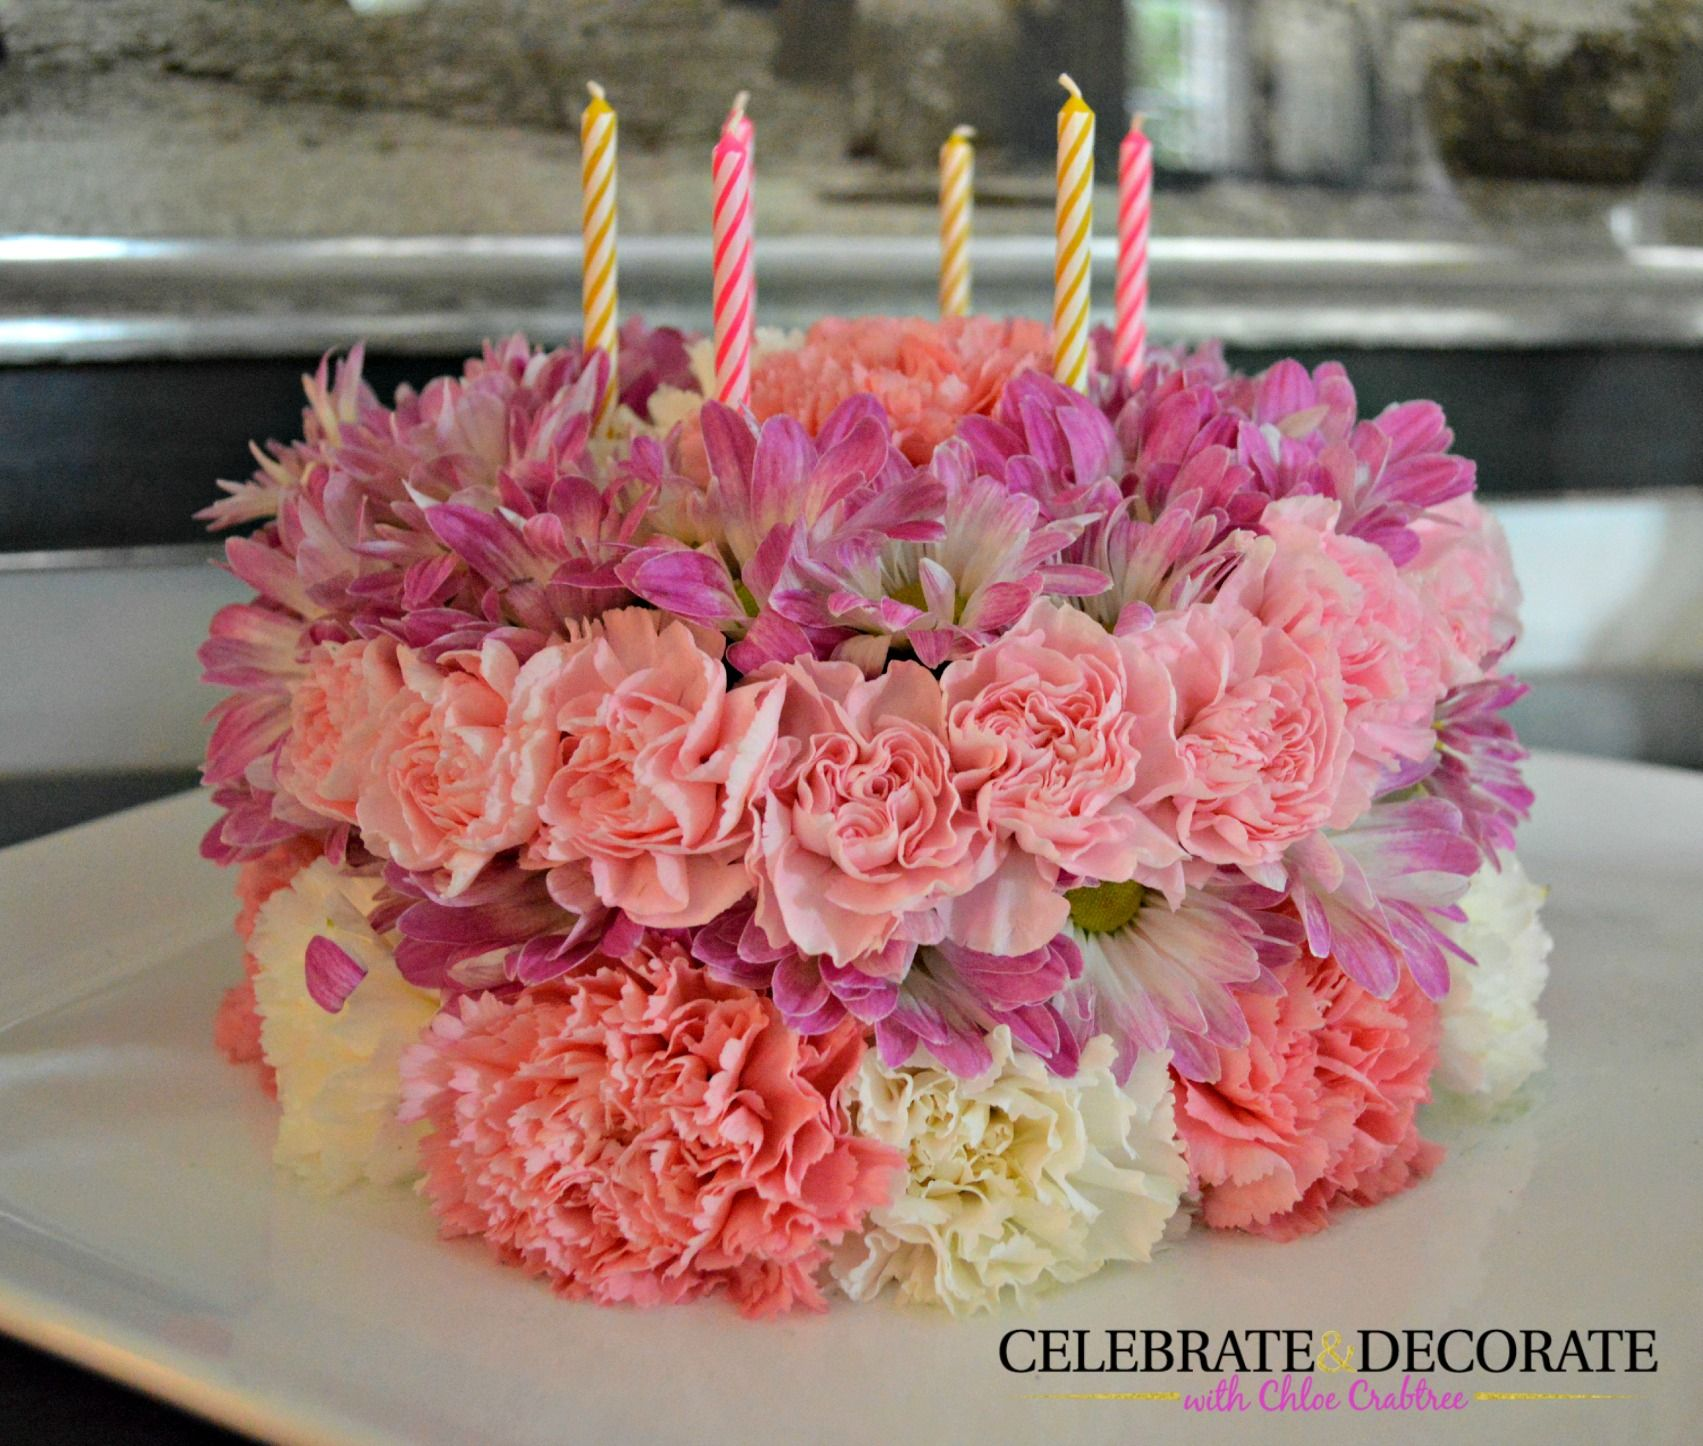 How To Make A Floral Birthday Cake Celebrate Decorate Birthday Cake With Flowers Happy Birthday Flower Birthday Flowers